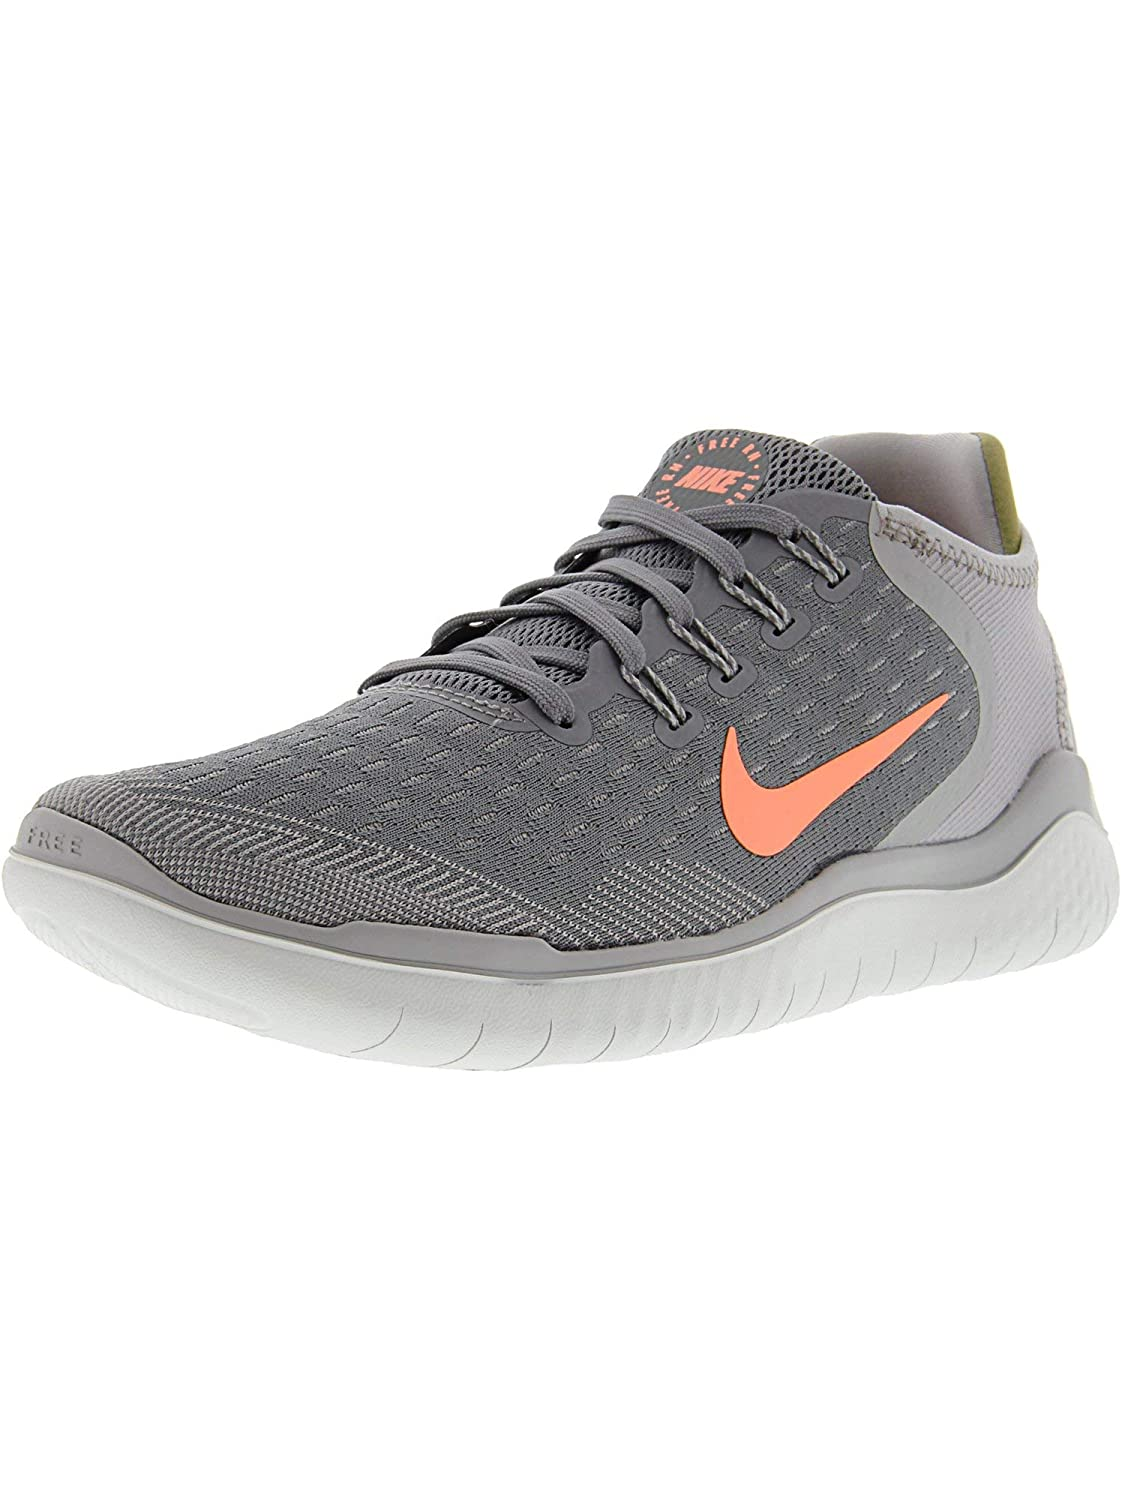 d68af03a1f9c Amazon.com  Nike Women s Free RN 2018 Running Shoe Gunsmoke Crimson Pulse  Atmosphere Grey Size 9.5 M US  Nike  Sports   Outdoors